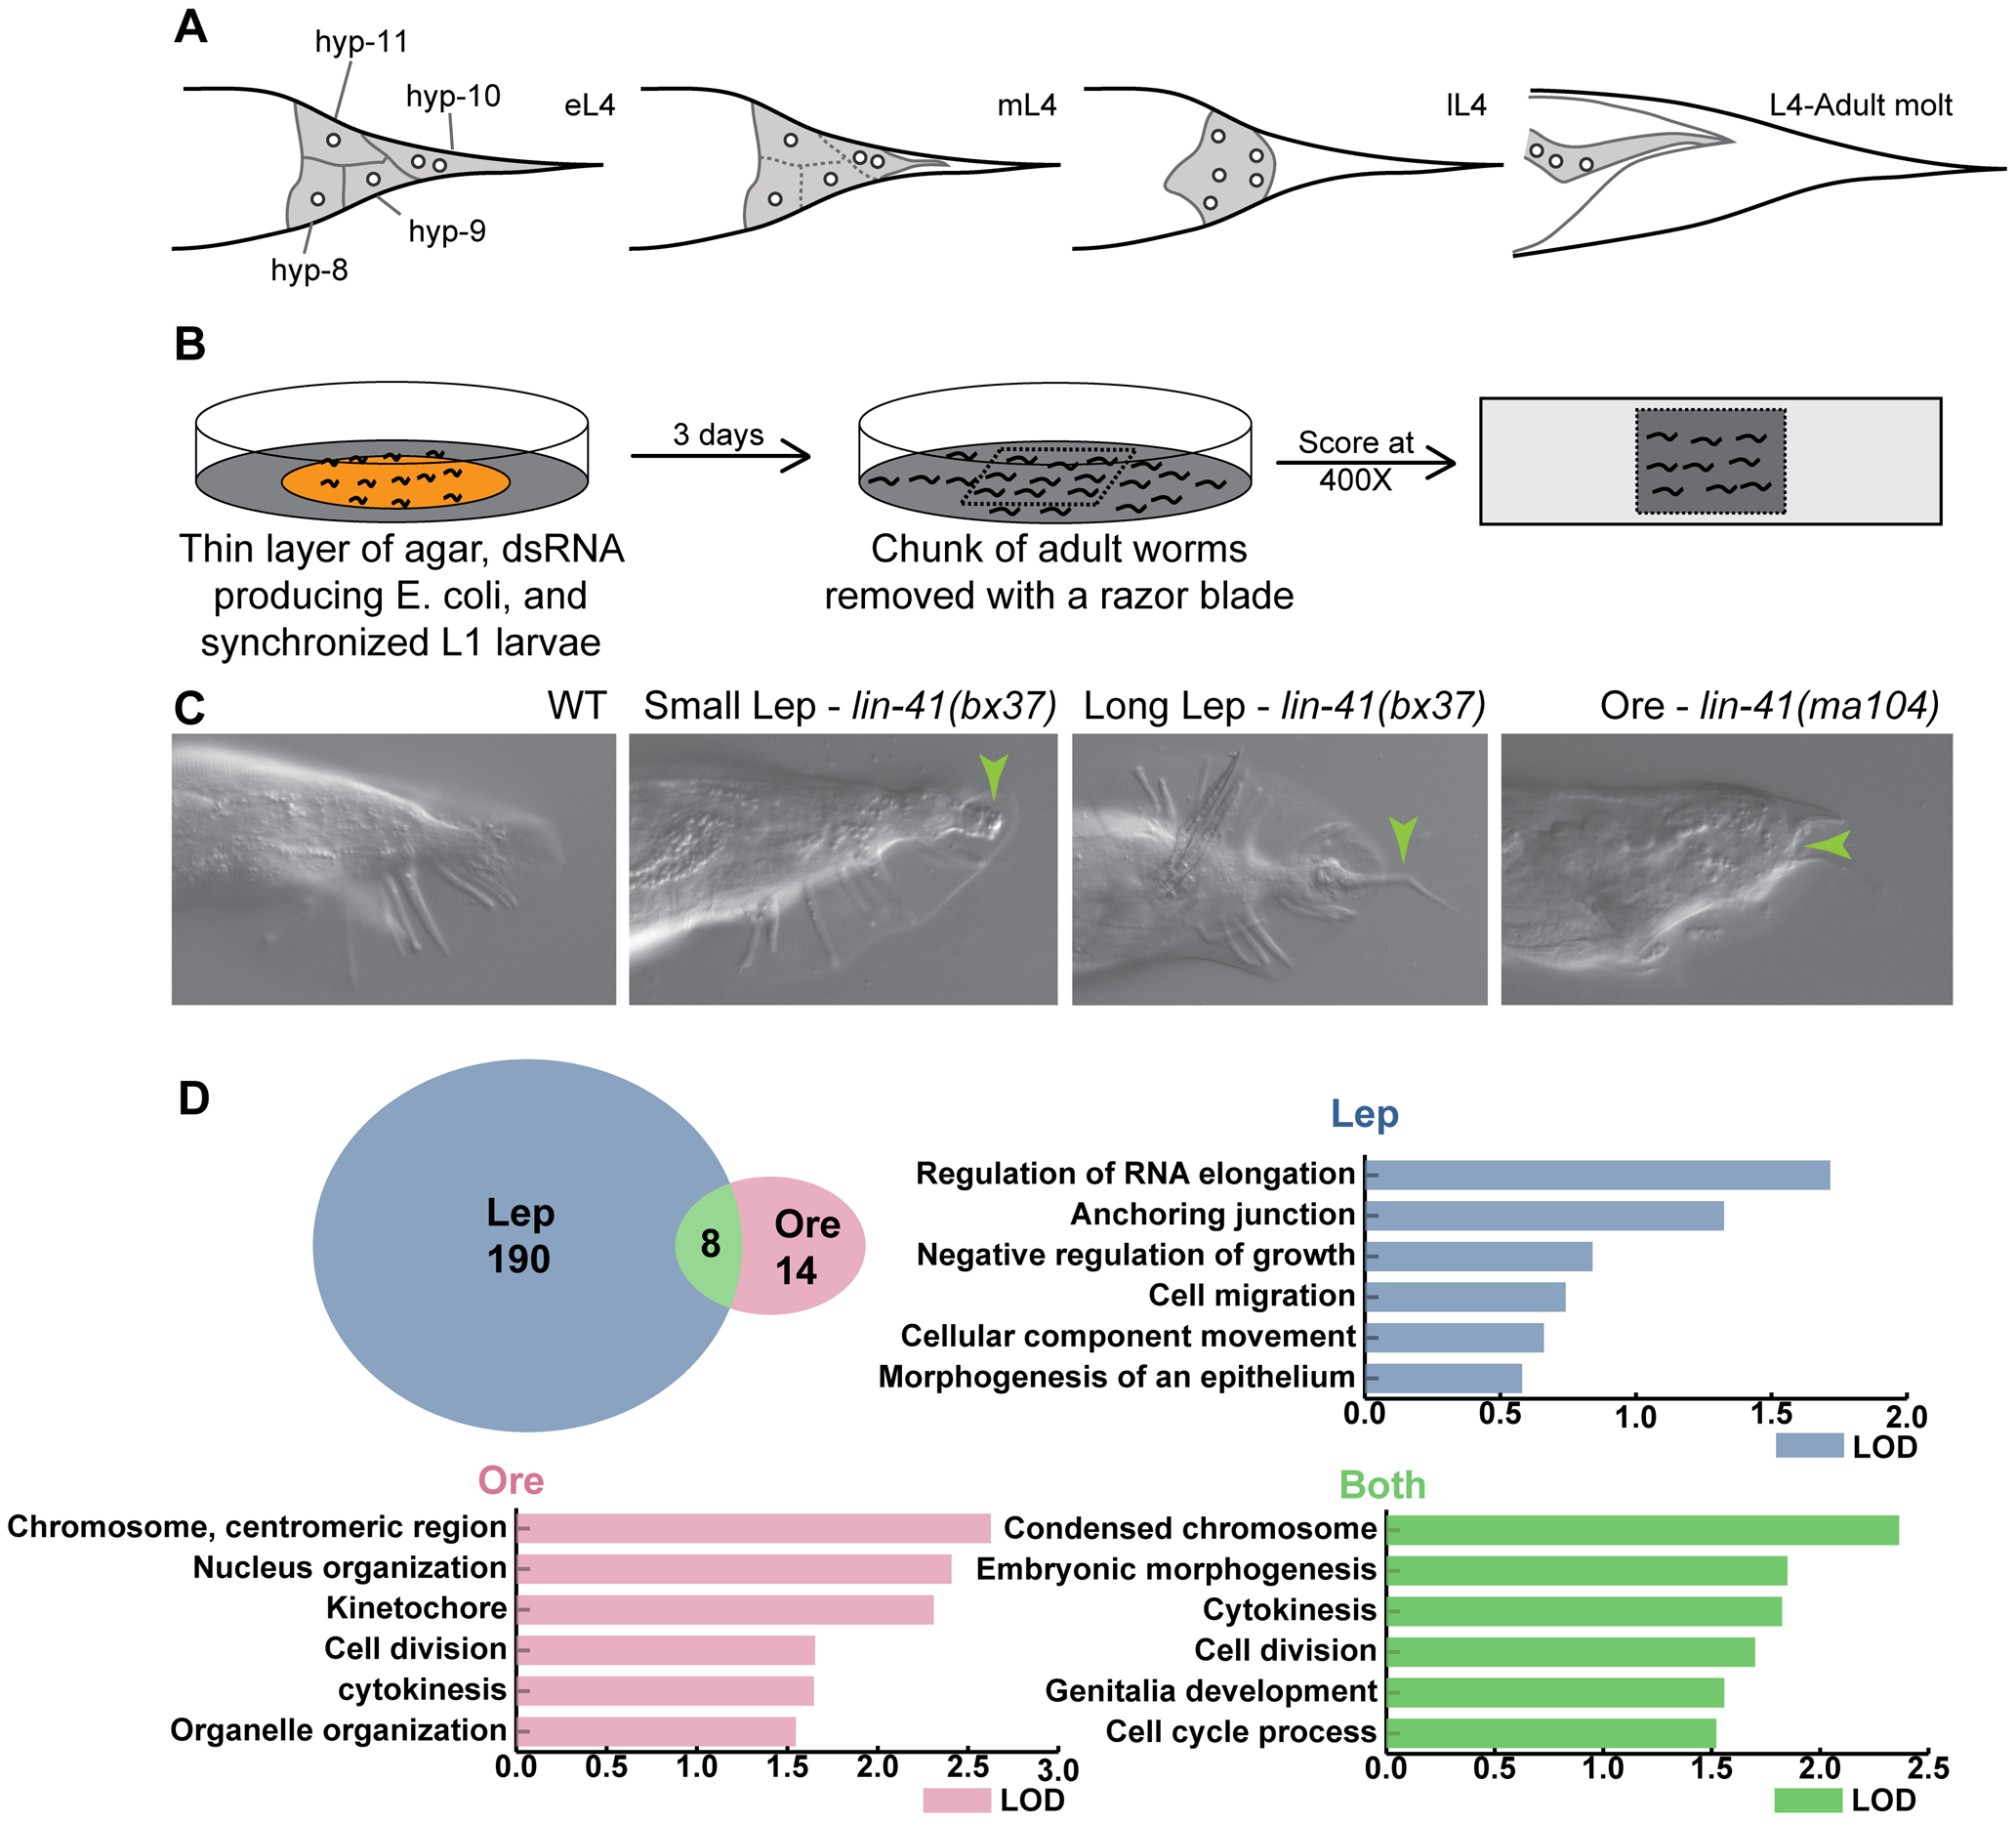 Overview of tail tip morphogenesis and the experimental design for the genome-wide RNAi screen for tail tip defects in male <i>C. elegans</i>.